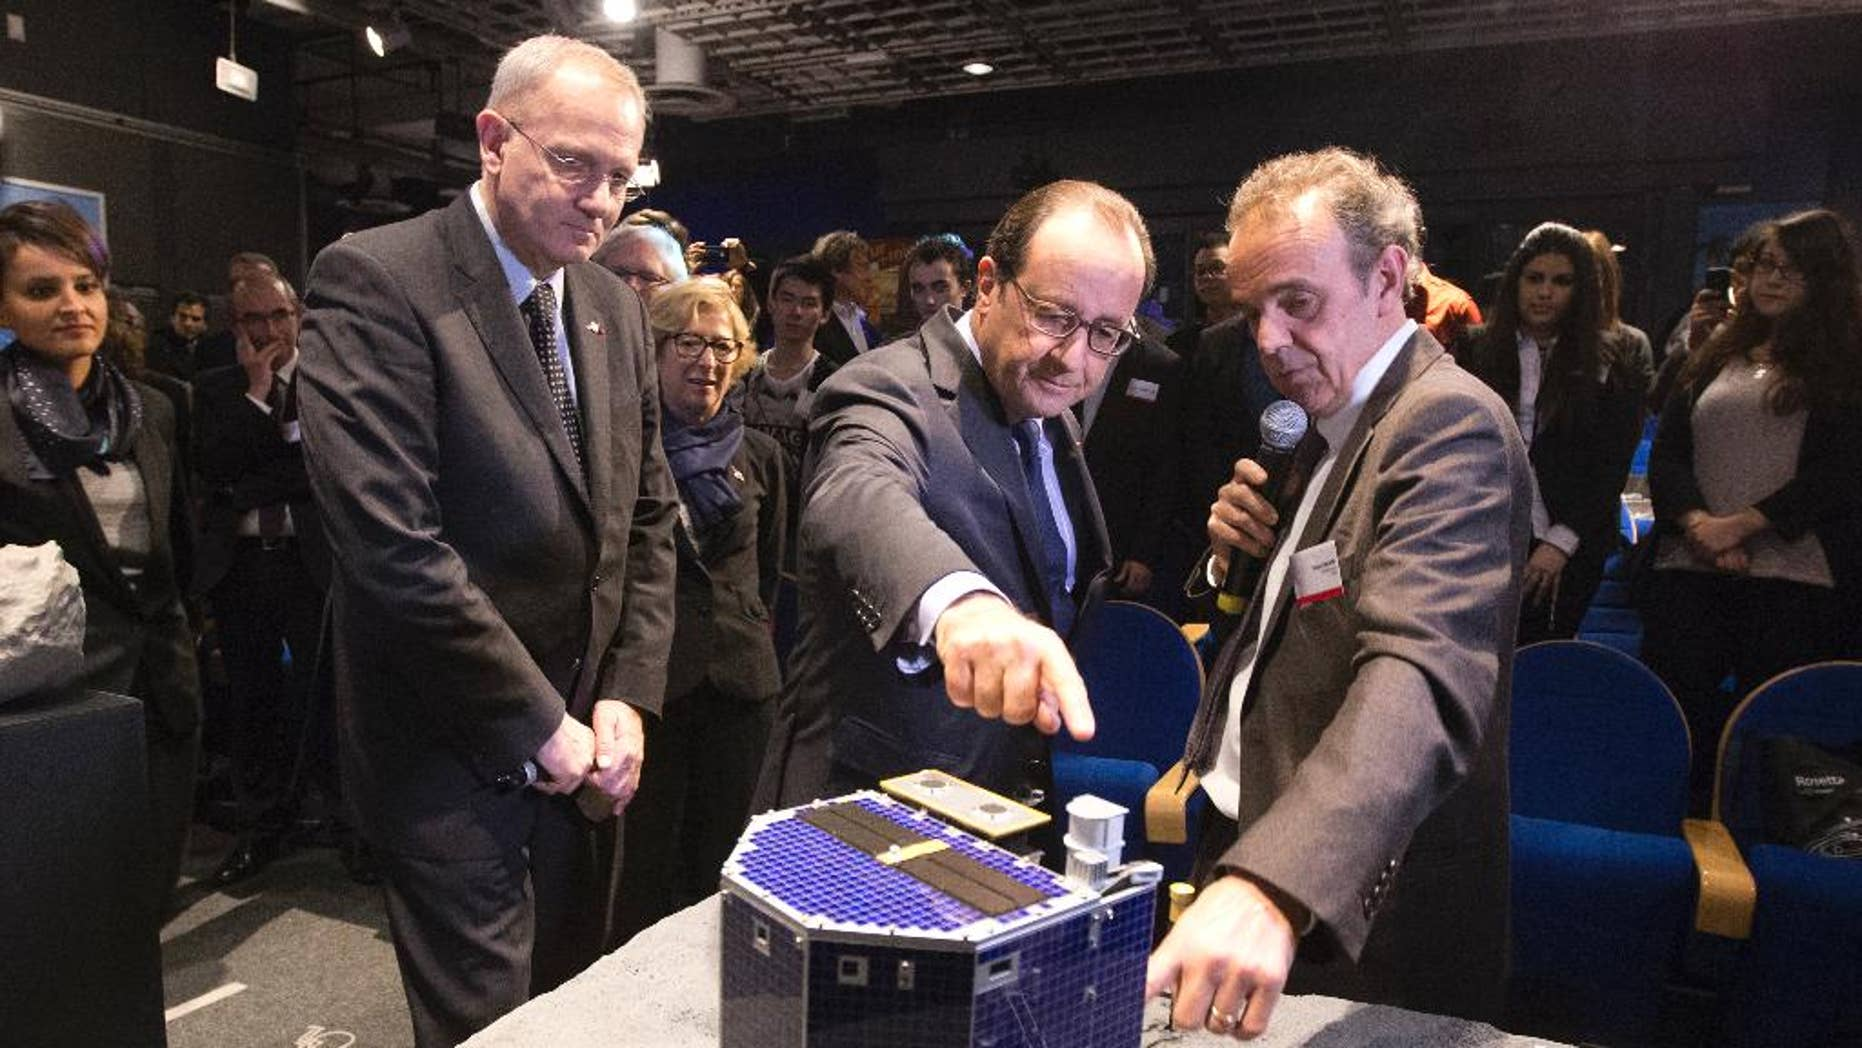 FILE - In this Wednesday, Nov. 12, 2014 file photo, French President Francois Hollande, center, with French astrophysicist Francis Rocard look at a model of Rosetta lander Philae, as they visit the Cite des Sciences at La Villette in Paris during a broadcast of the Rosetta mission as it orbits around comet 67/P Churyumov-Gersimenko. The European Space Agency says Wednesday July 27, 20167  it is switching off its radio link to the probe that landed on a comet, after receiving no signal from the lander for a year.  (AP Photo/Jacques Brinon, Pool, file)